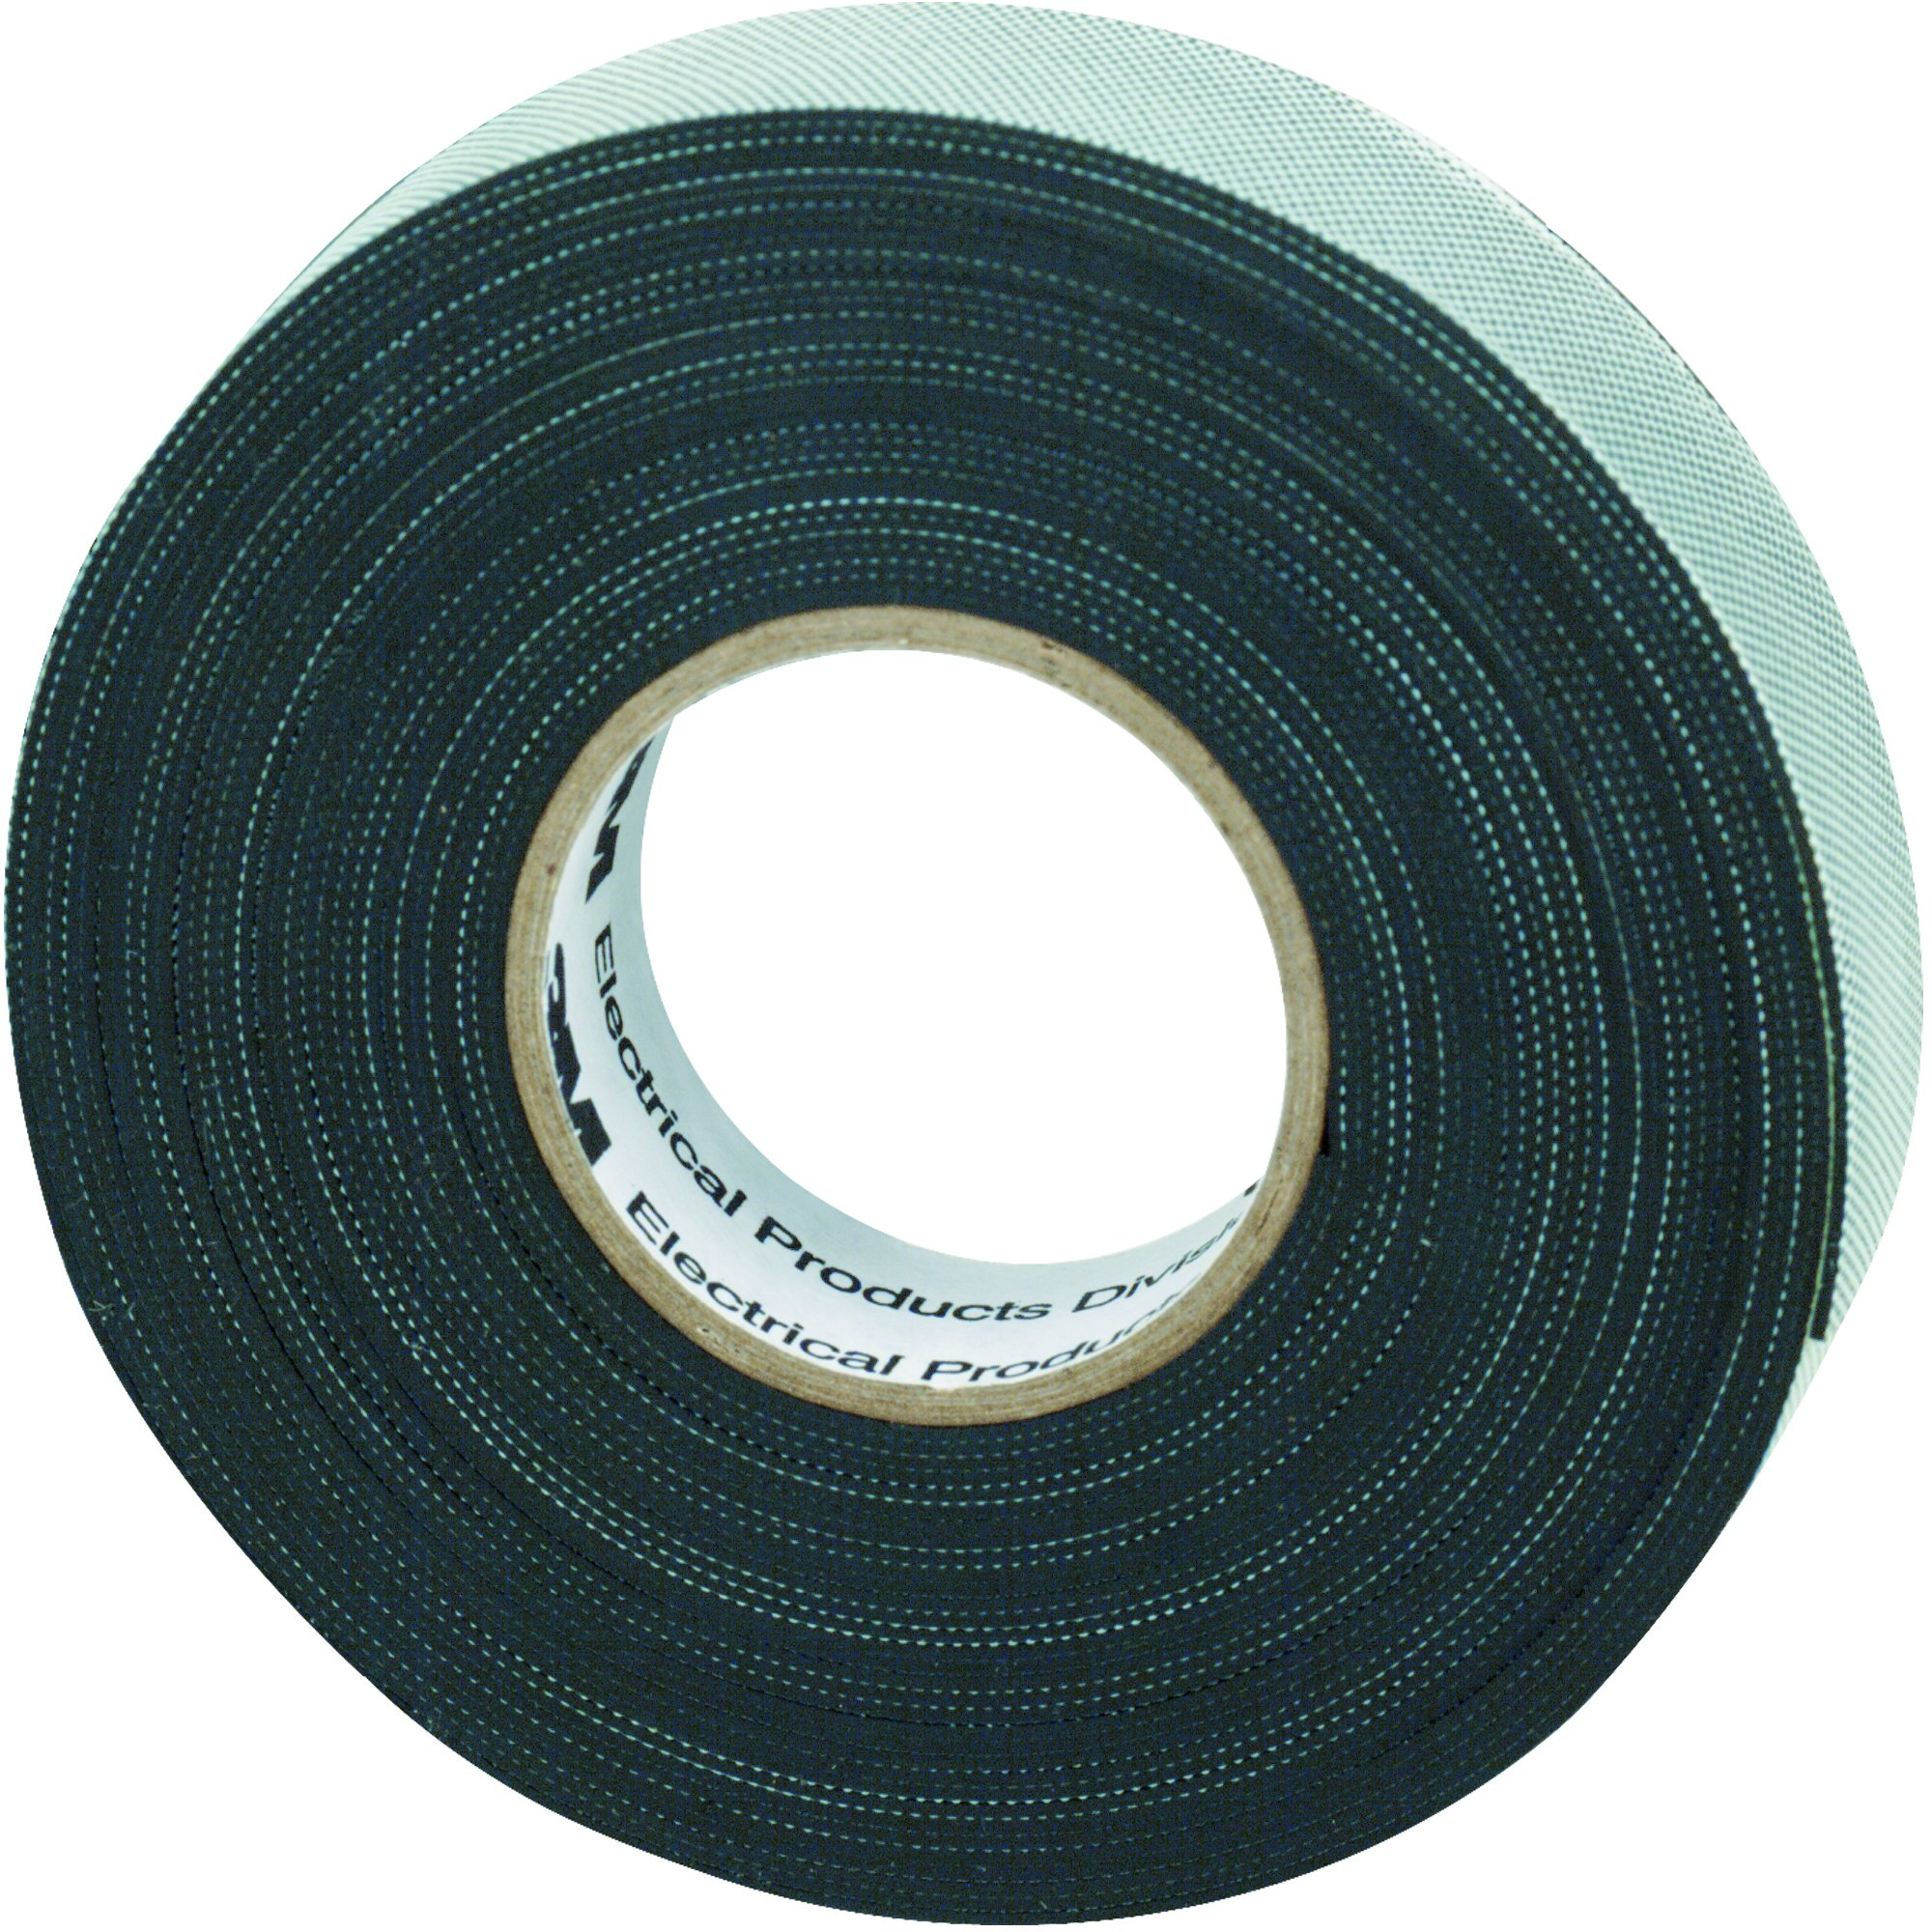 BOX USA BT964215510PK Black 3M 2155 Rubber Splicing Electrical Tape, 30 mil, 3/4'' x 22' (Pack of 10)